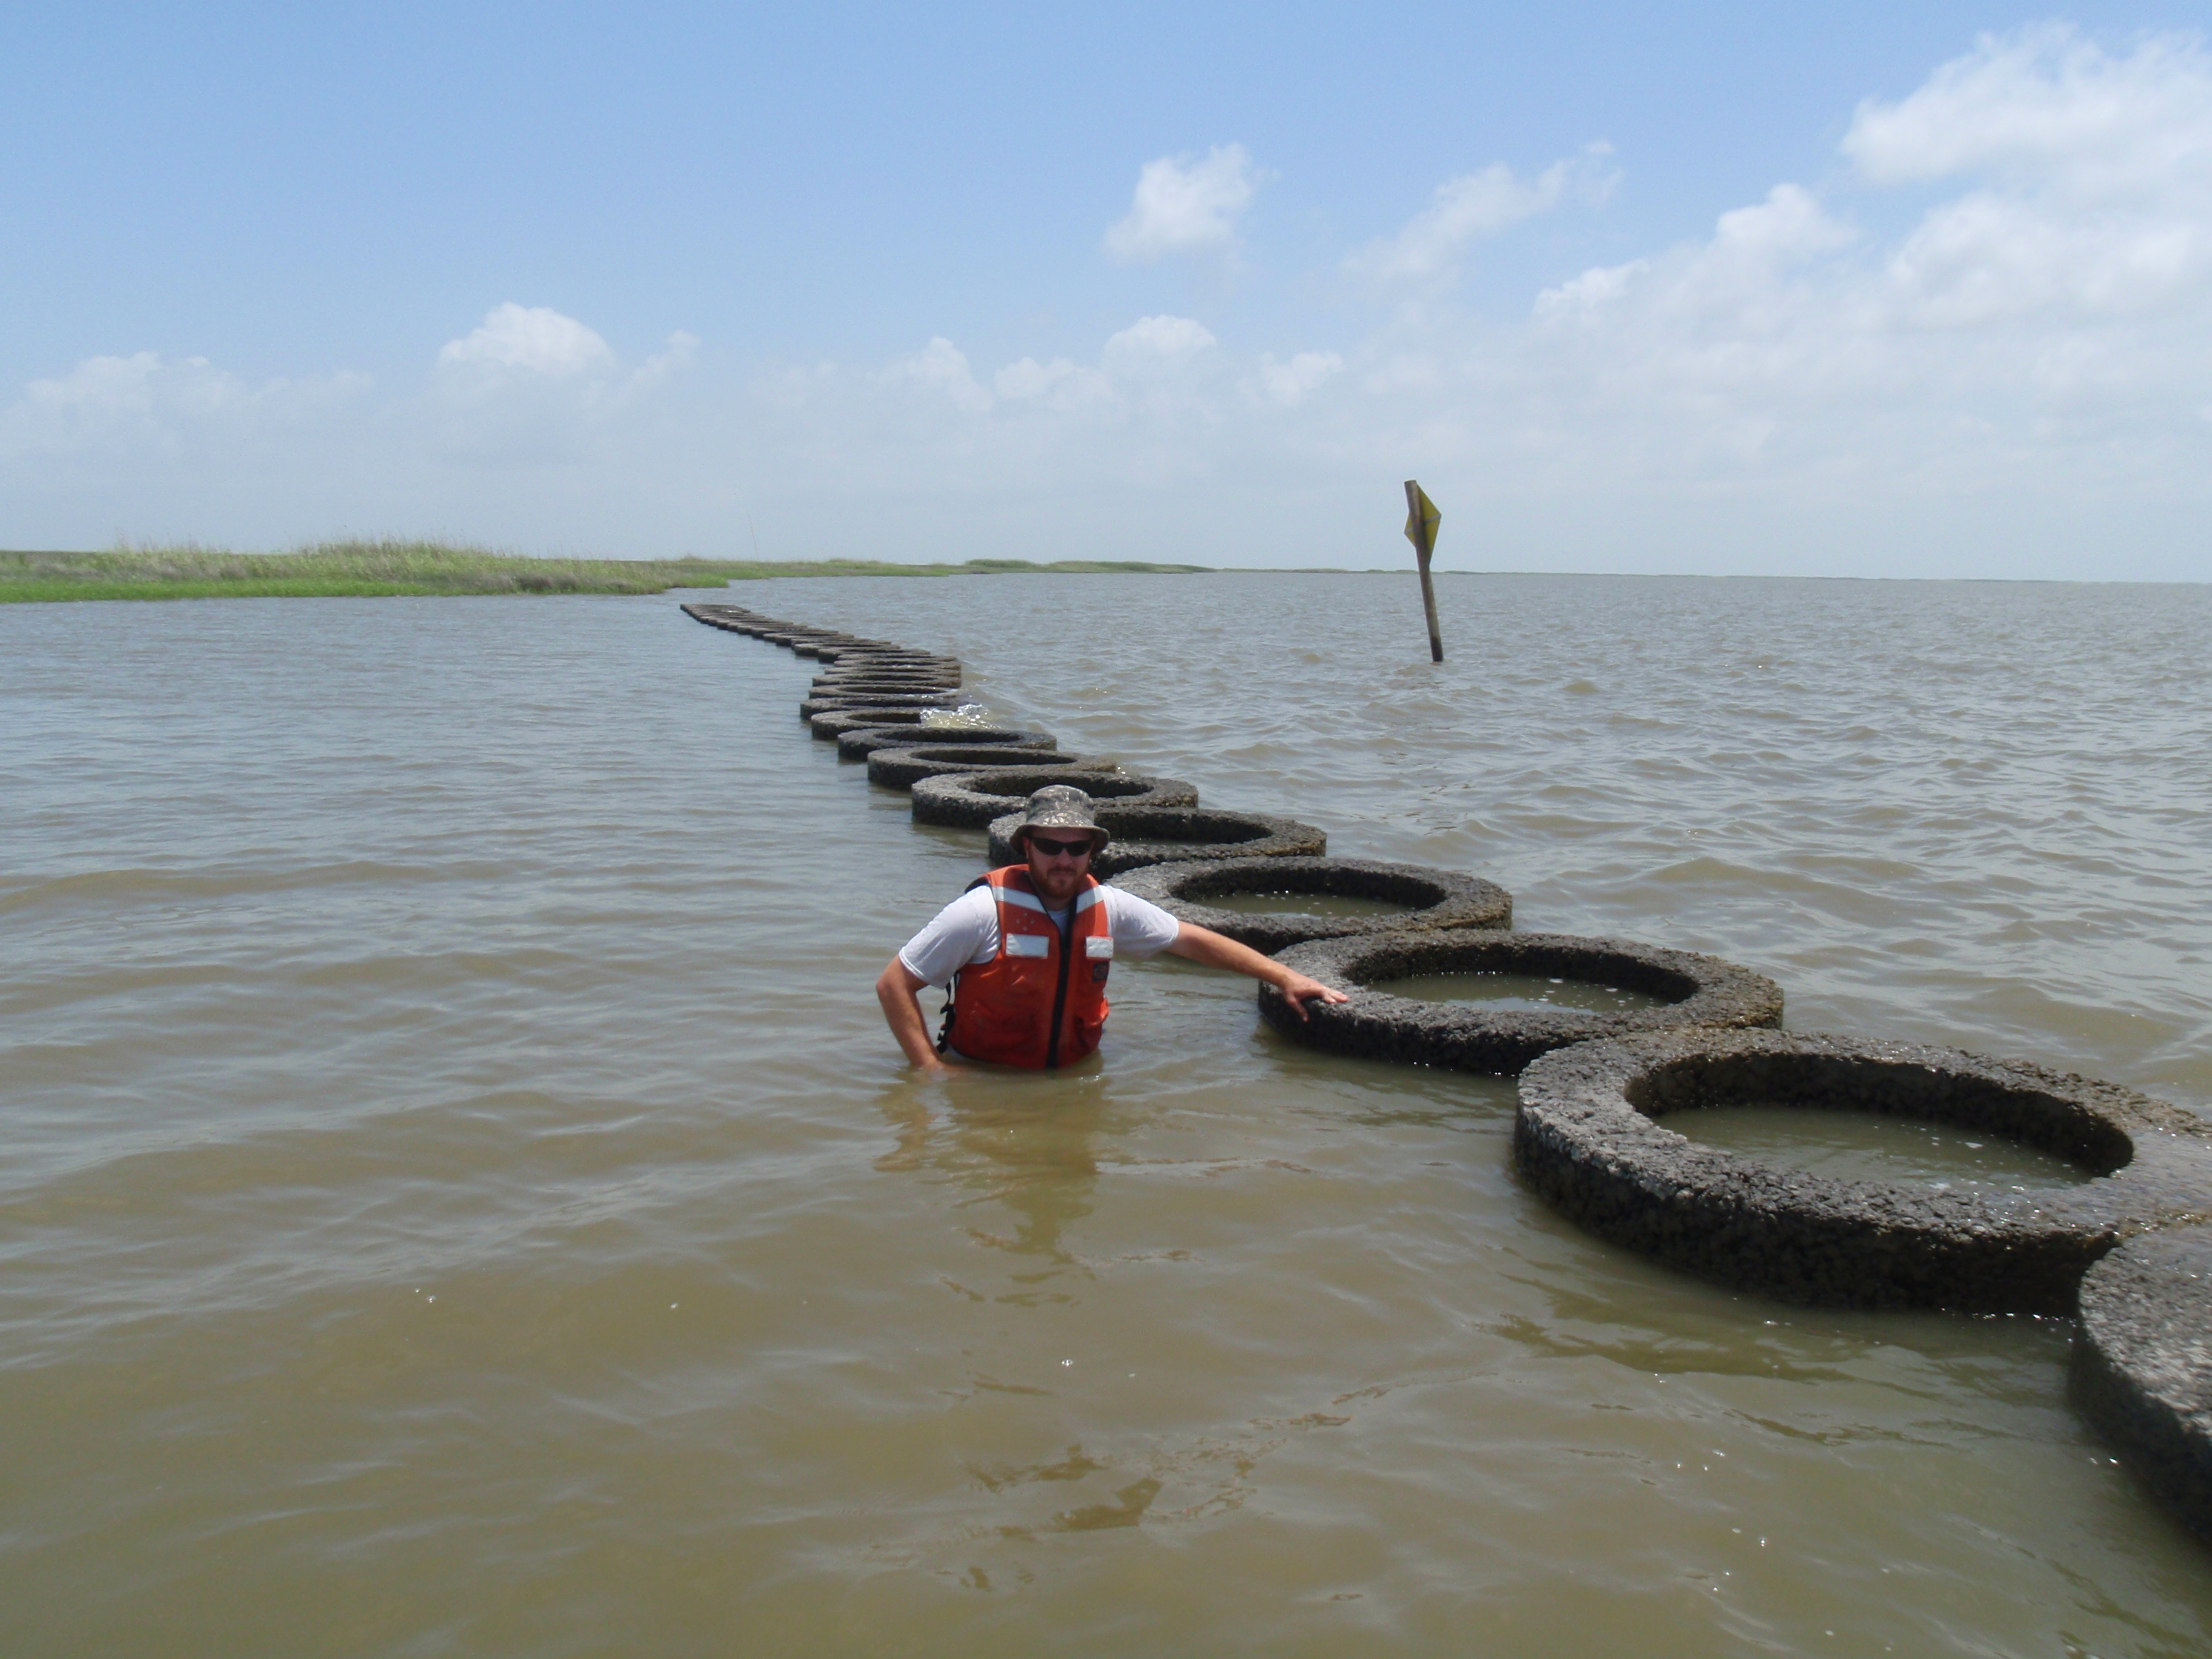 Oysterkrete rings placed in Vermilion Bay, LA to examine the use of bio-engineered rings to establish a living shoreline.  Graduate student Steve Beck examines the rings.